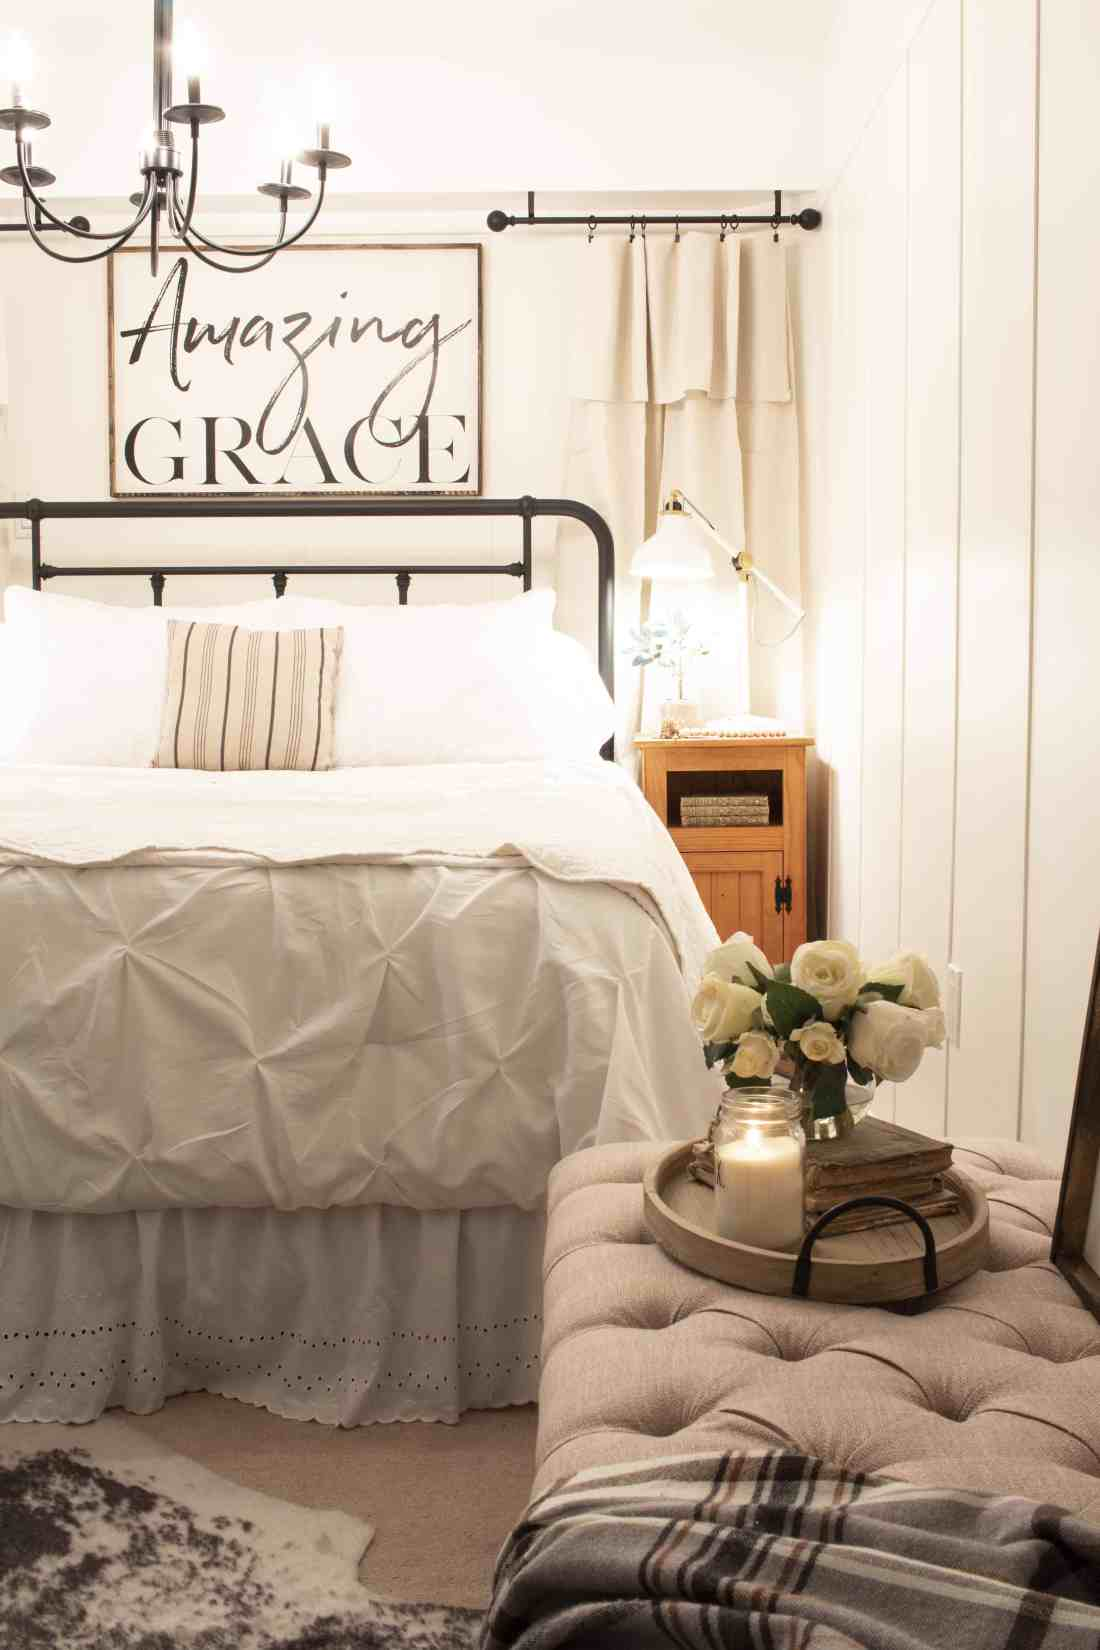 iron headboard tufted bench guest bed